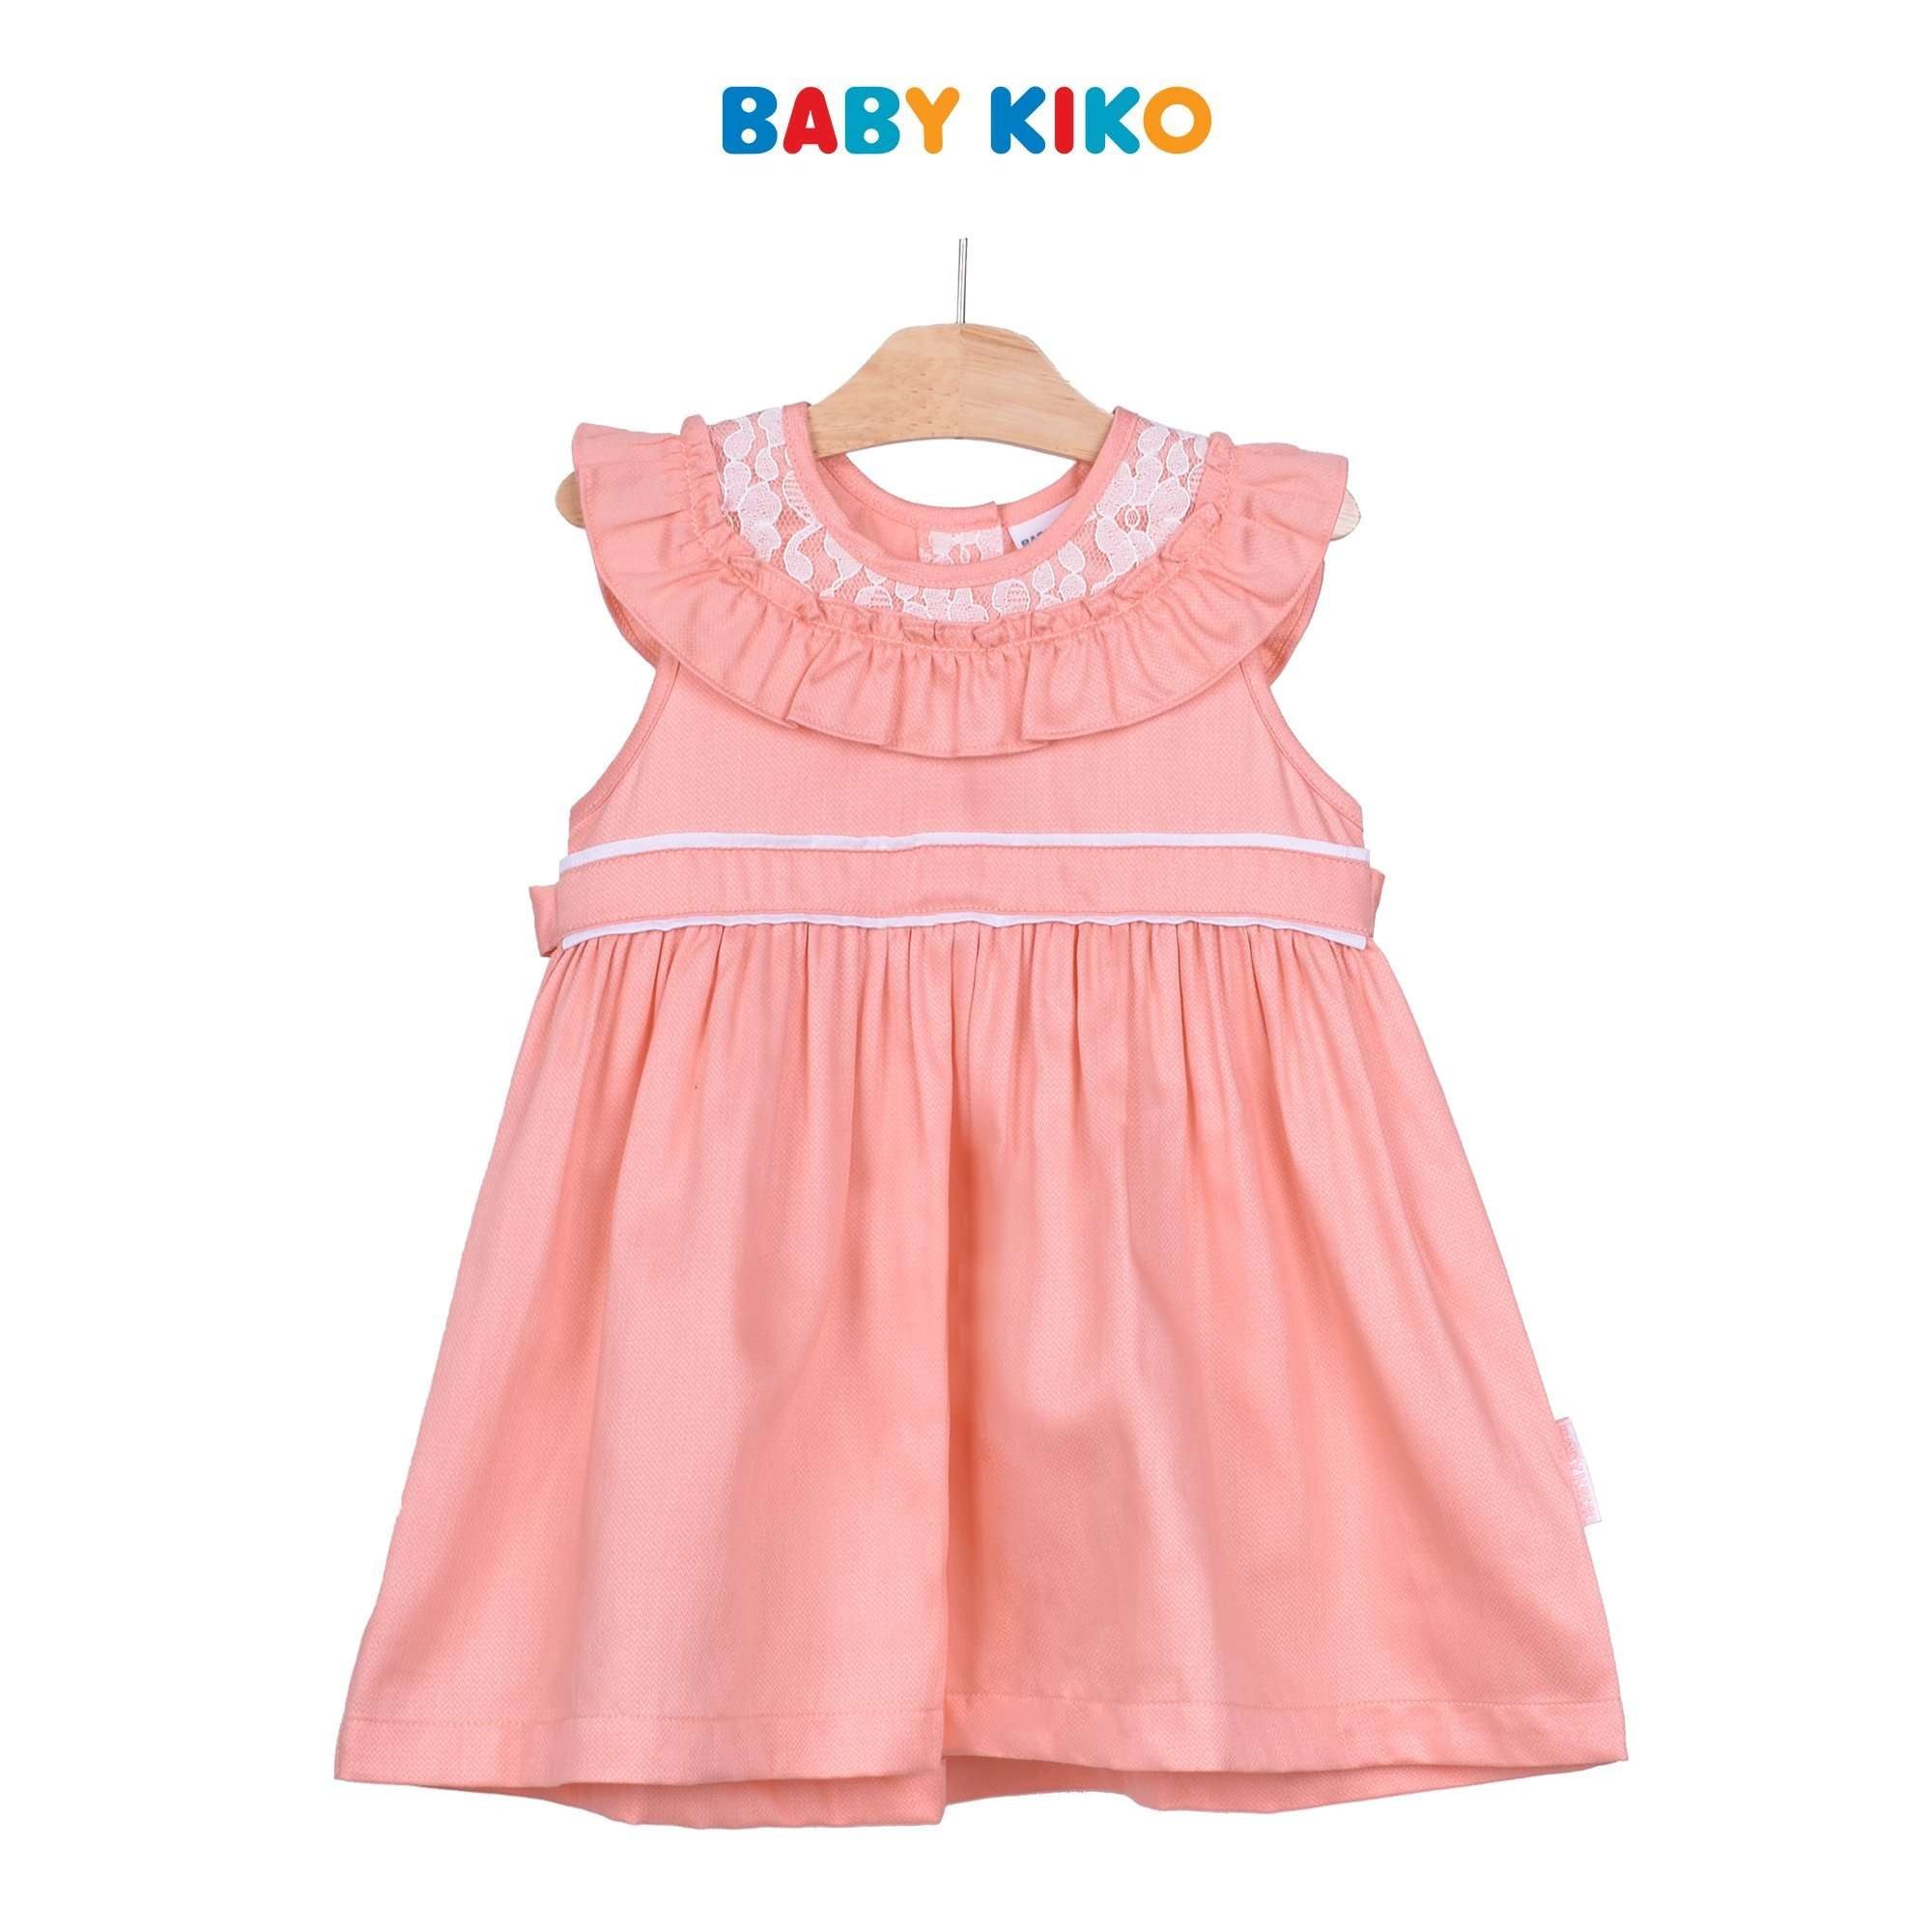 Baby KIKO Toddler Girl Sleeveless Dress - Peach 315141-311 : Buy Baby KIKO online at CMG.MY